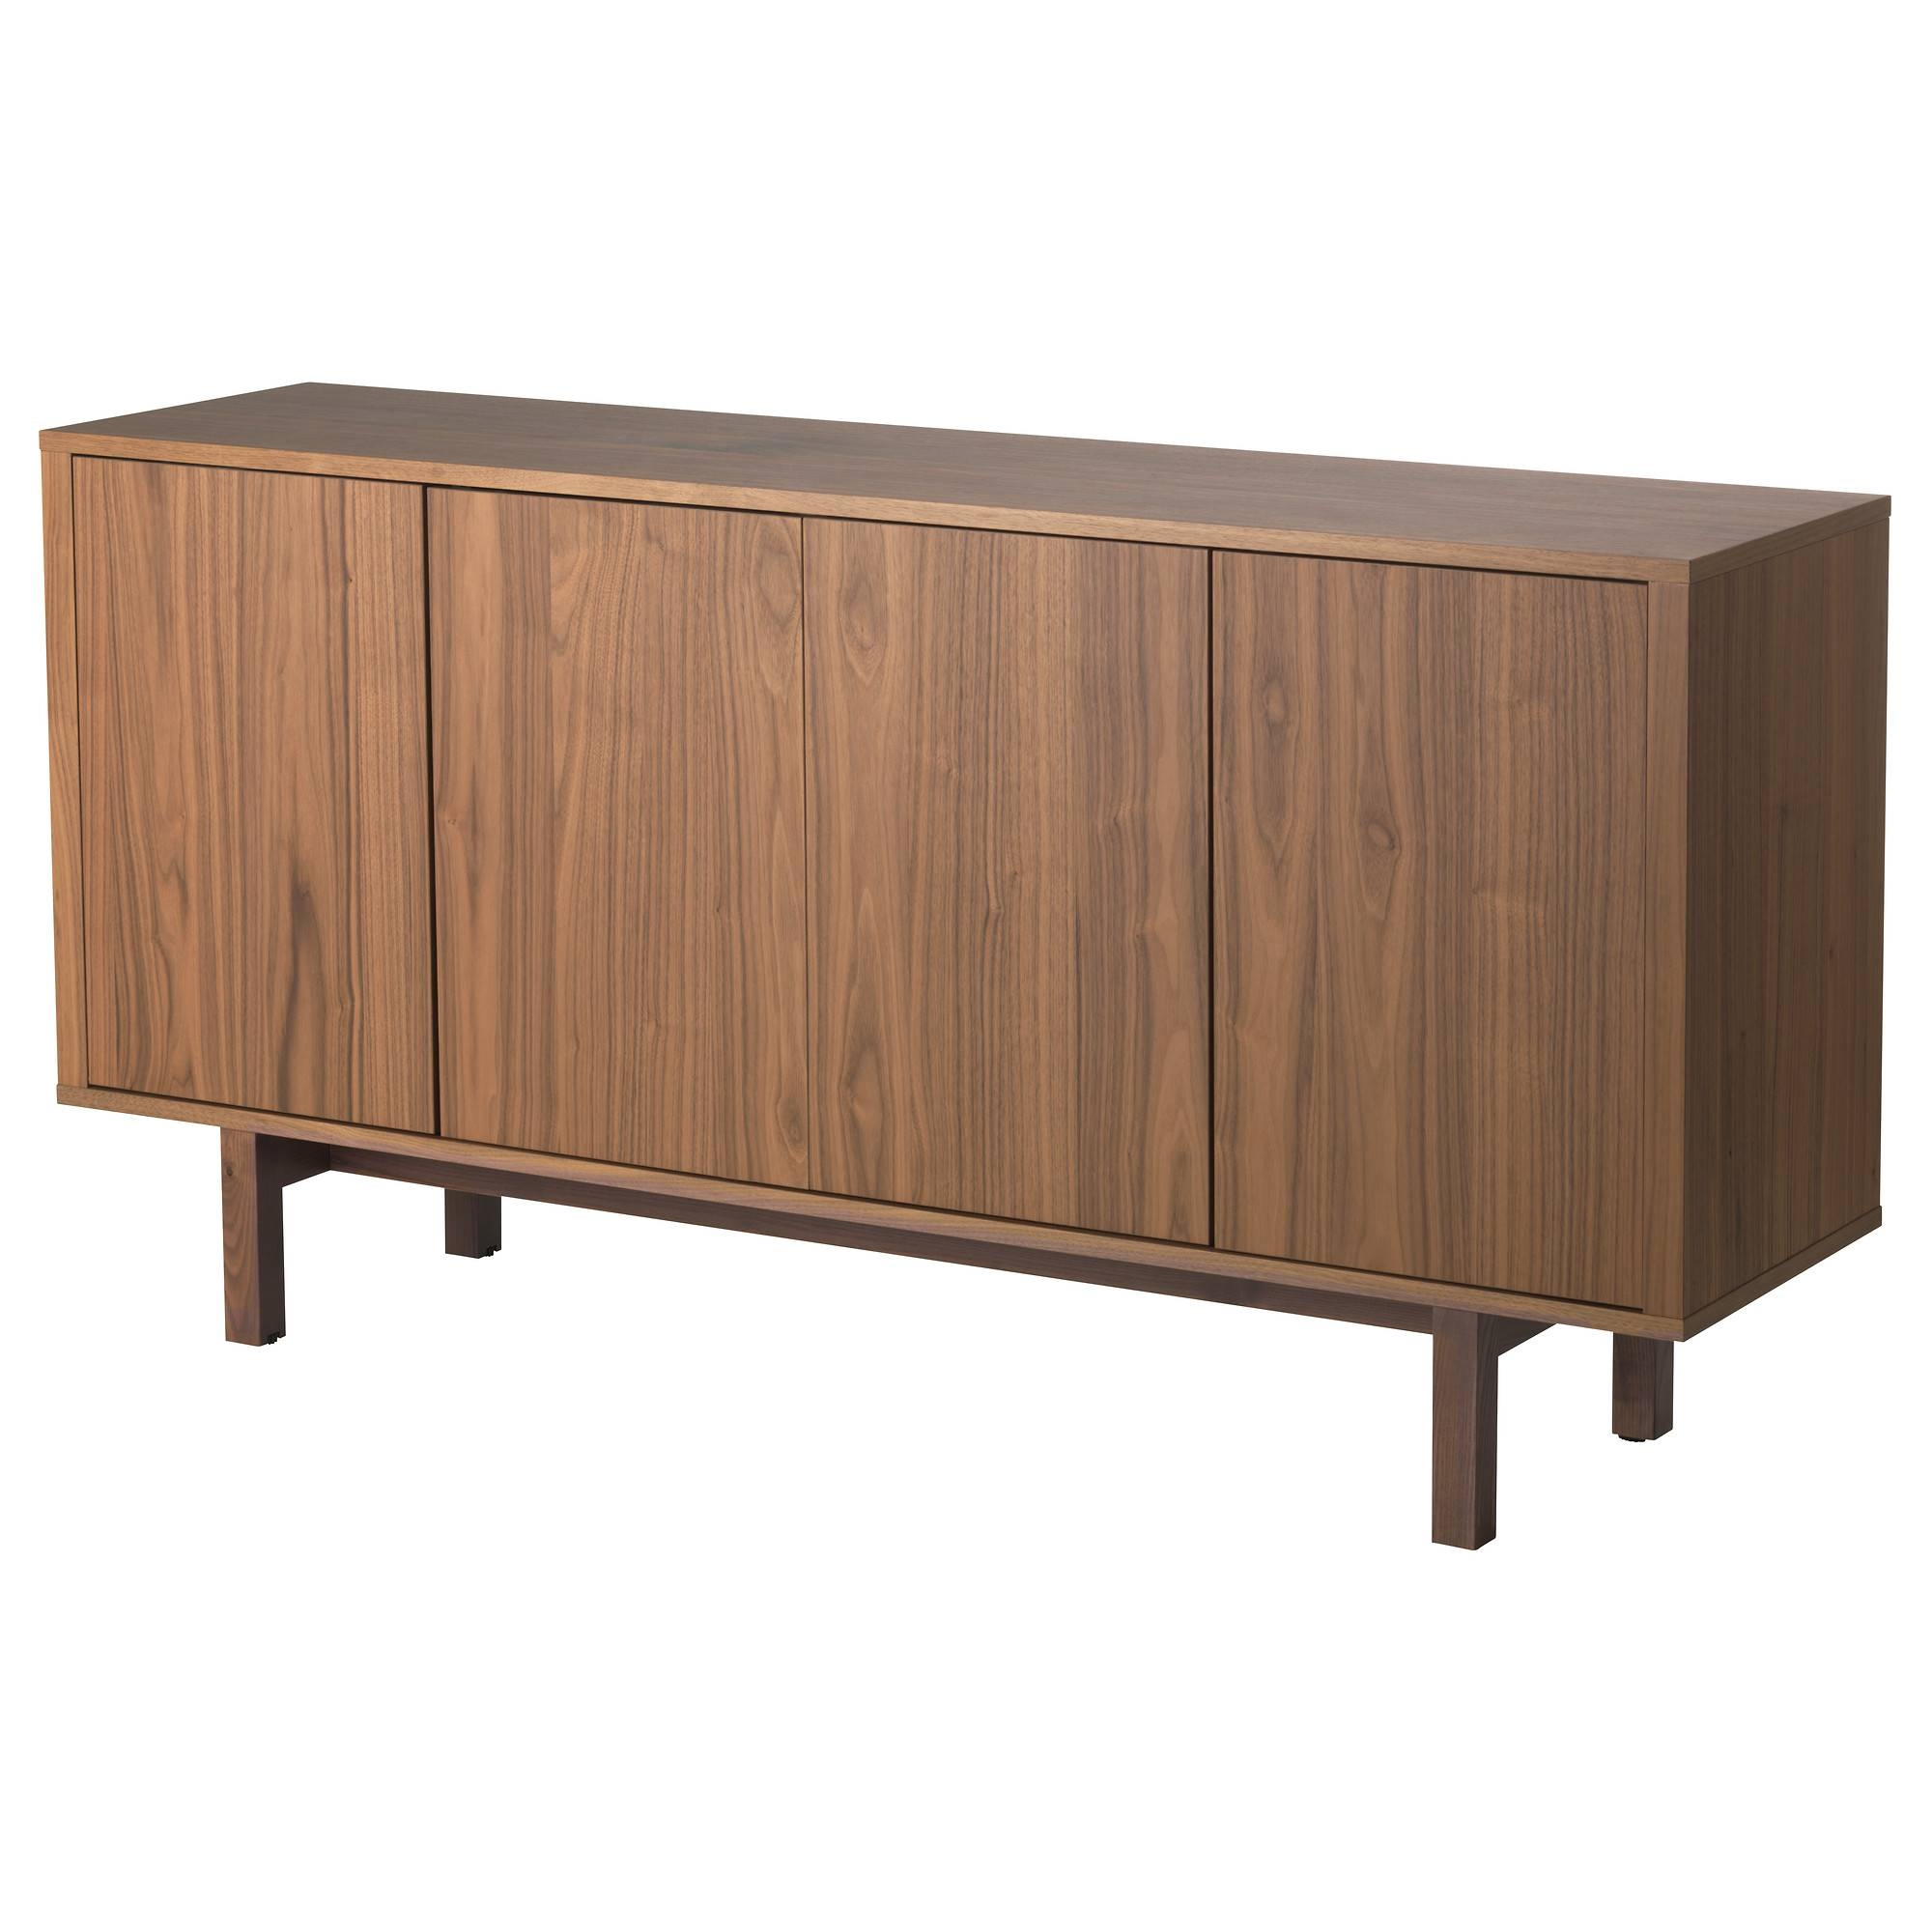 Buffet Tables & Sideboards - Ikea pertaining to Sideboards (Image 4 of 30)